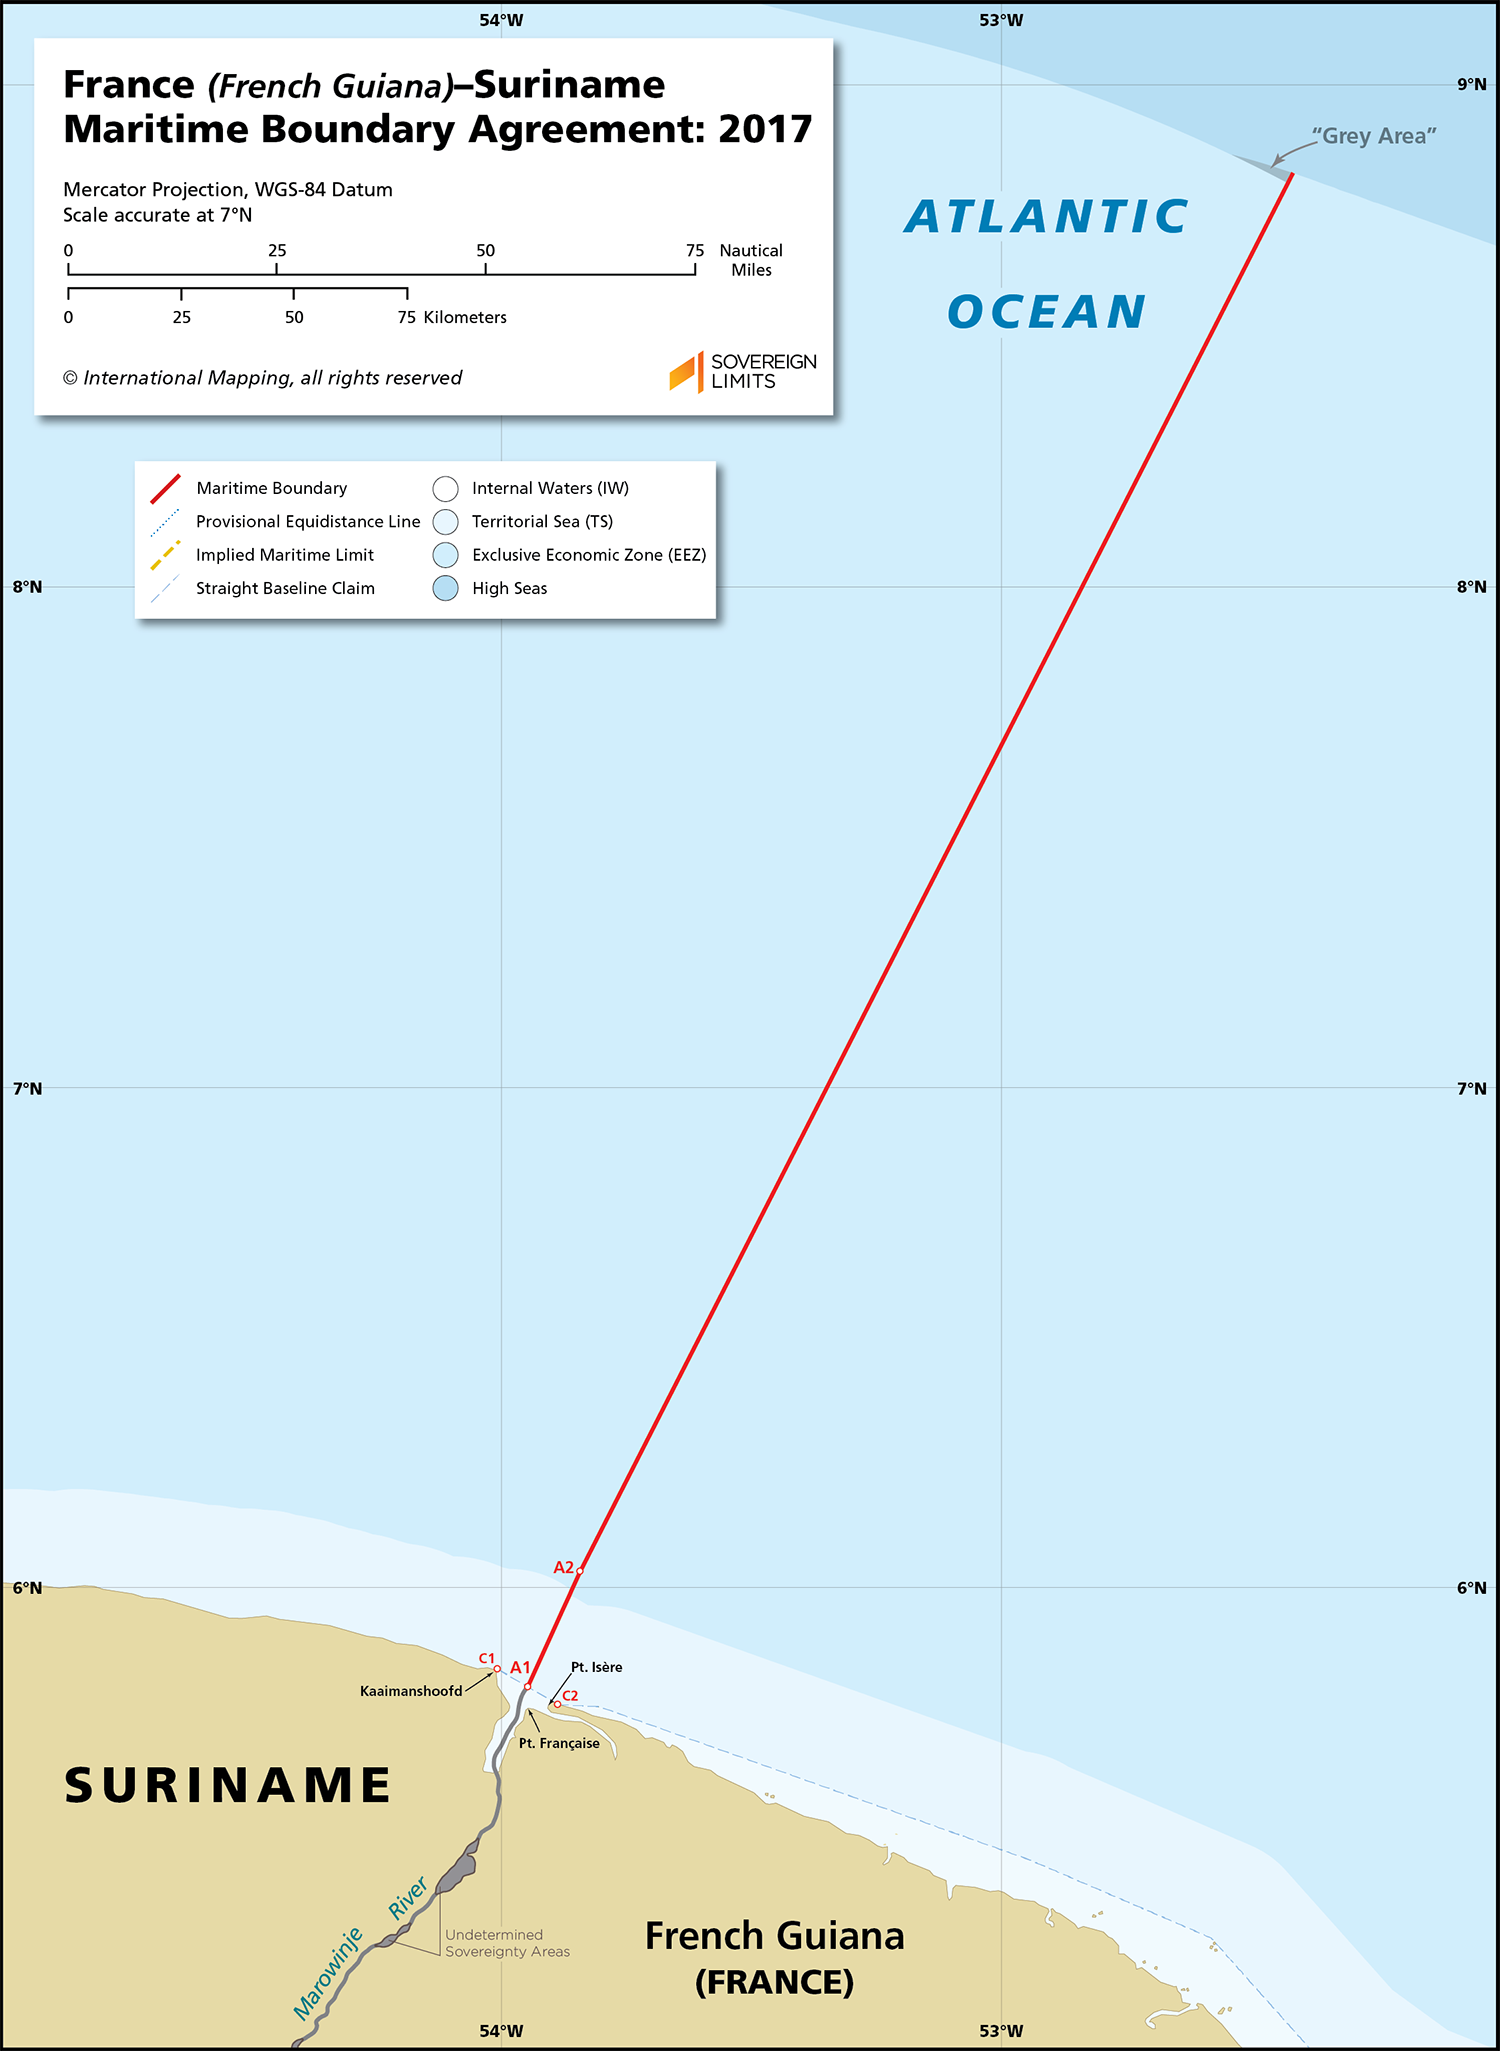 Map showing the maritime boundary between French Guiana and Suriname